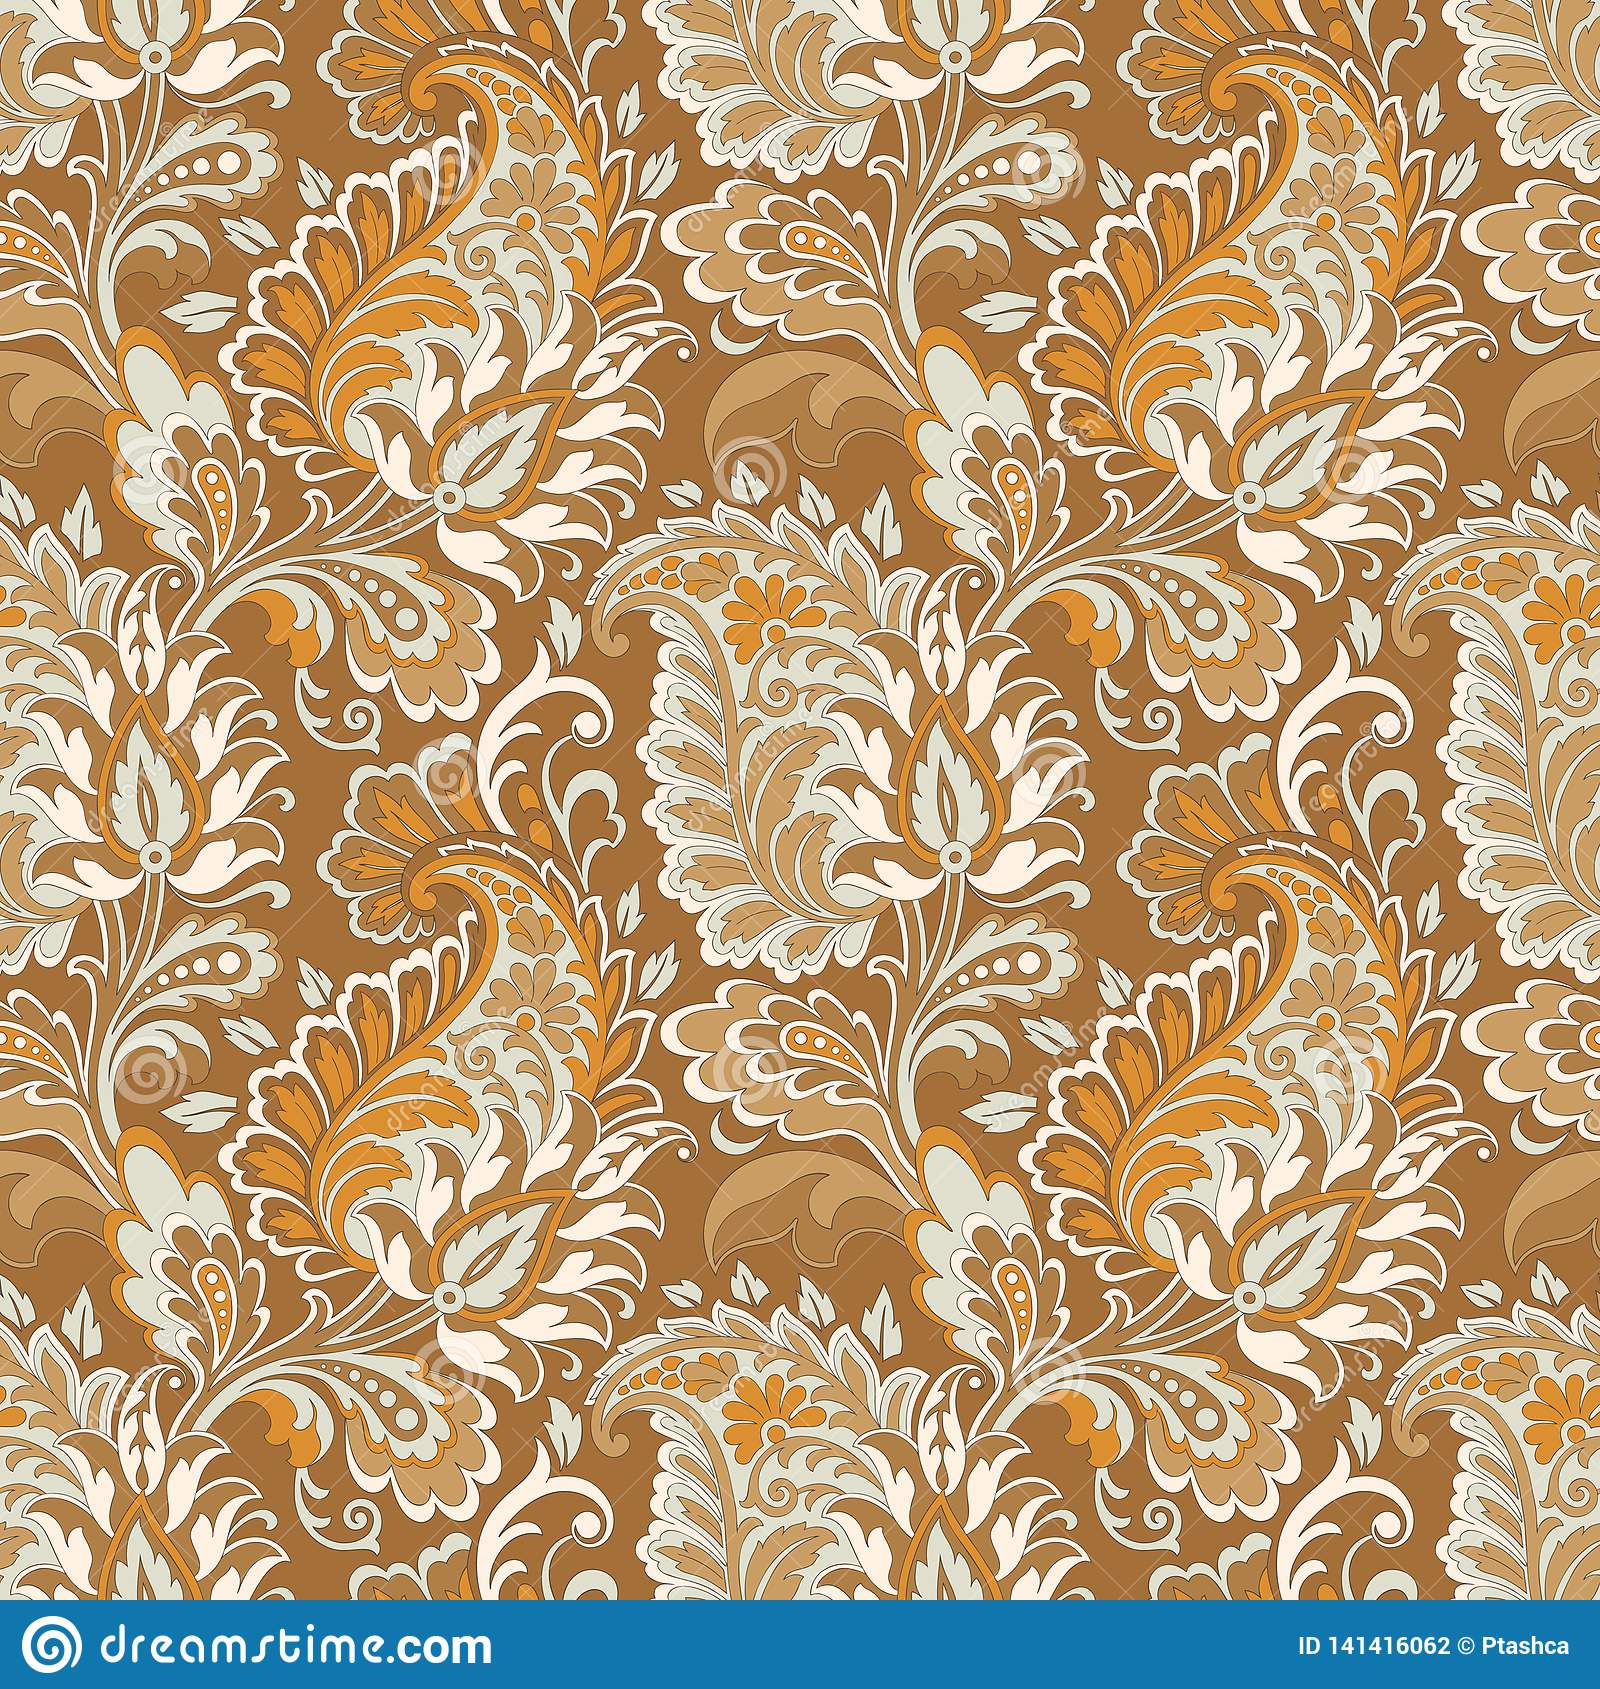 Paisley Vector Seamless Pattern Fantastic Flower Leaves Textile